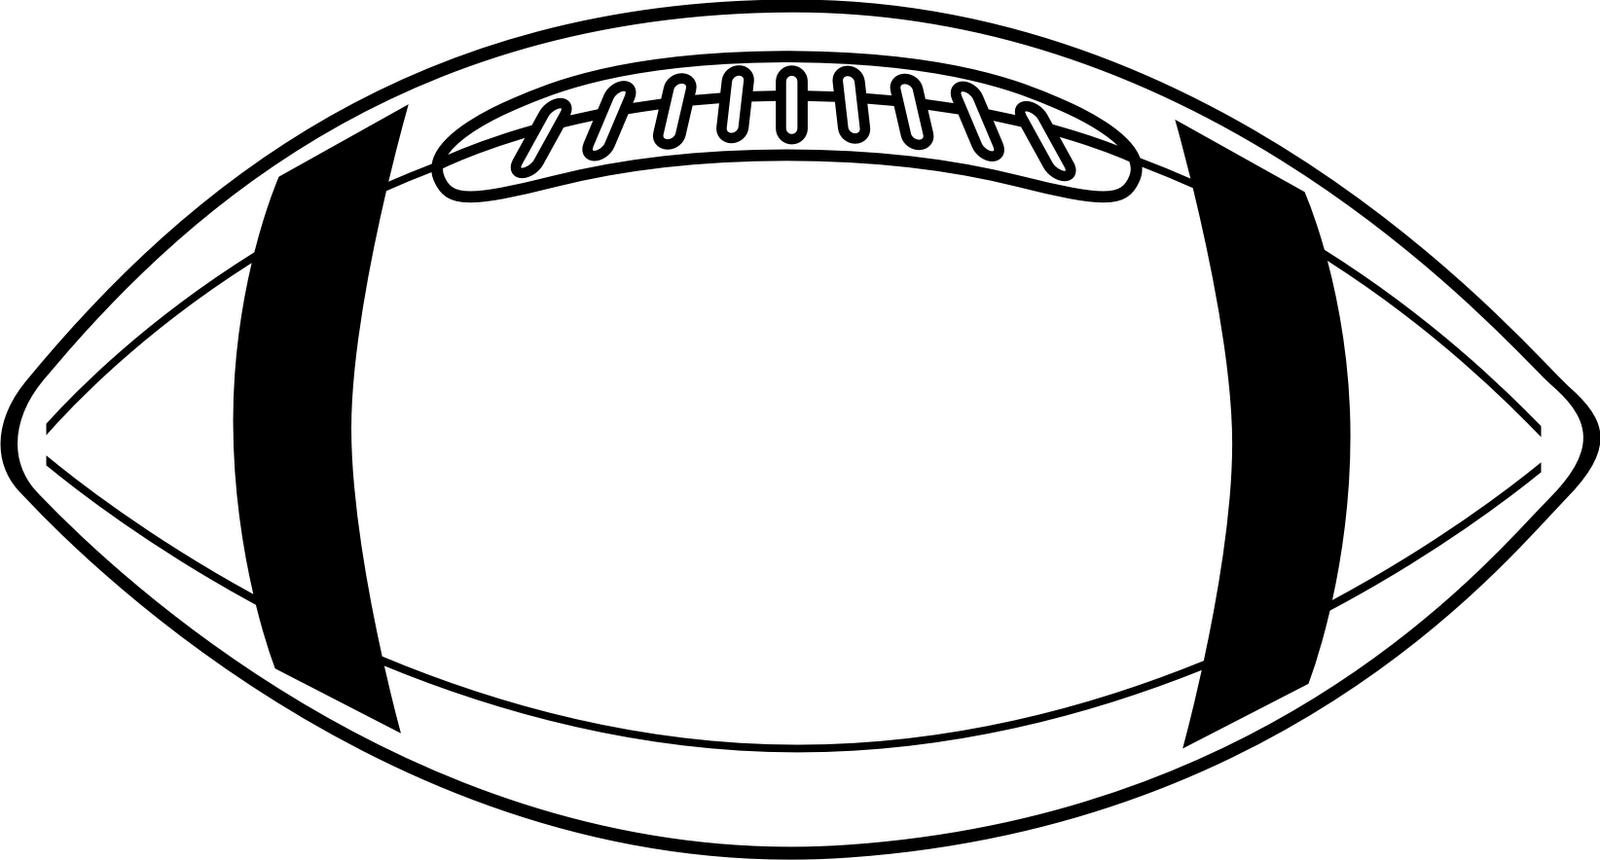 Clip Art Football Field Black And White Football Players Clipart Black